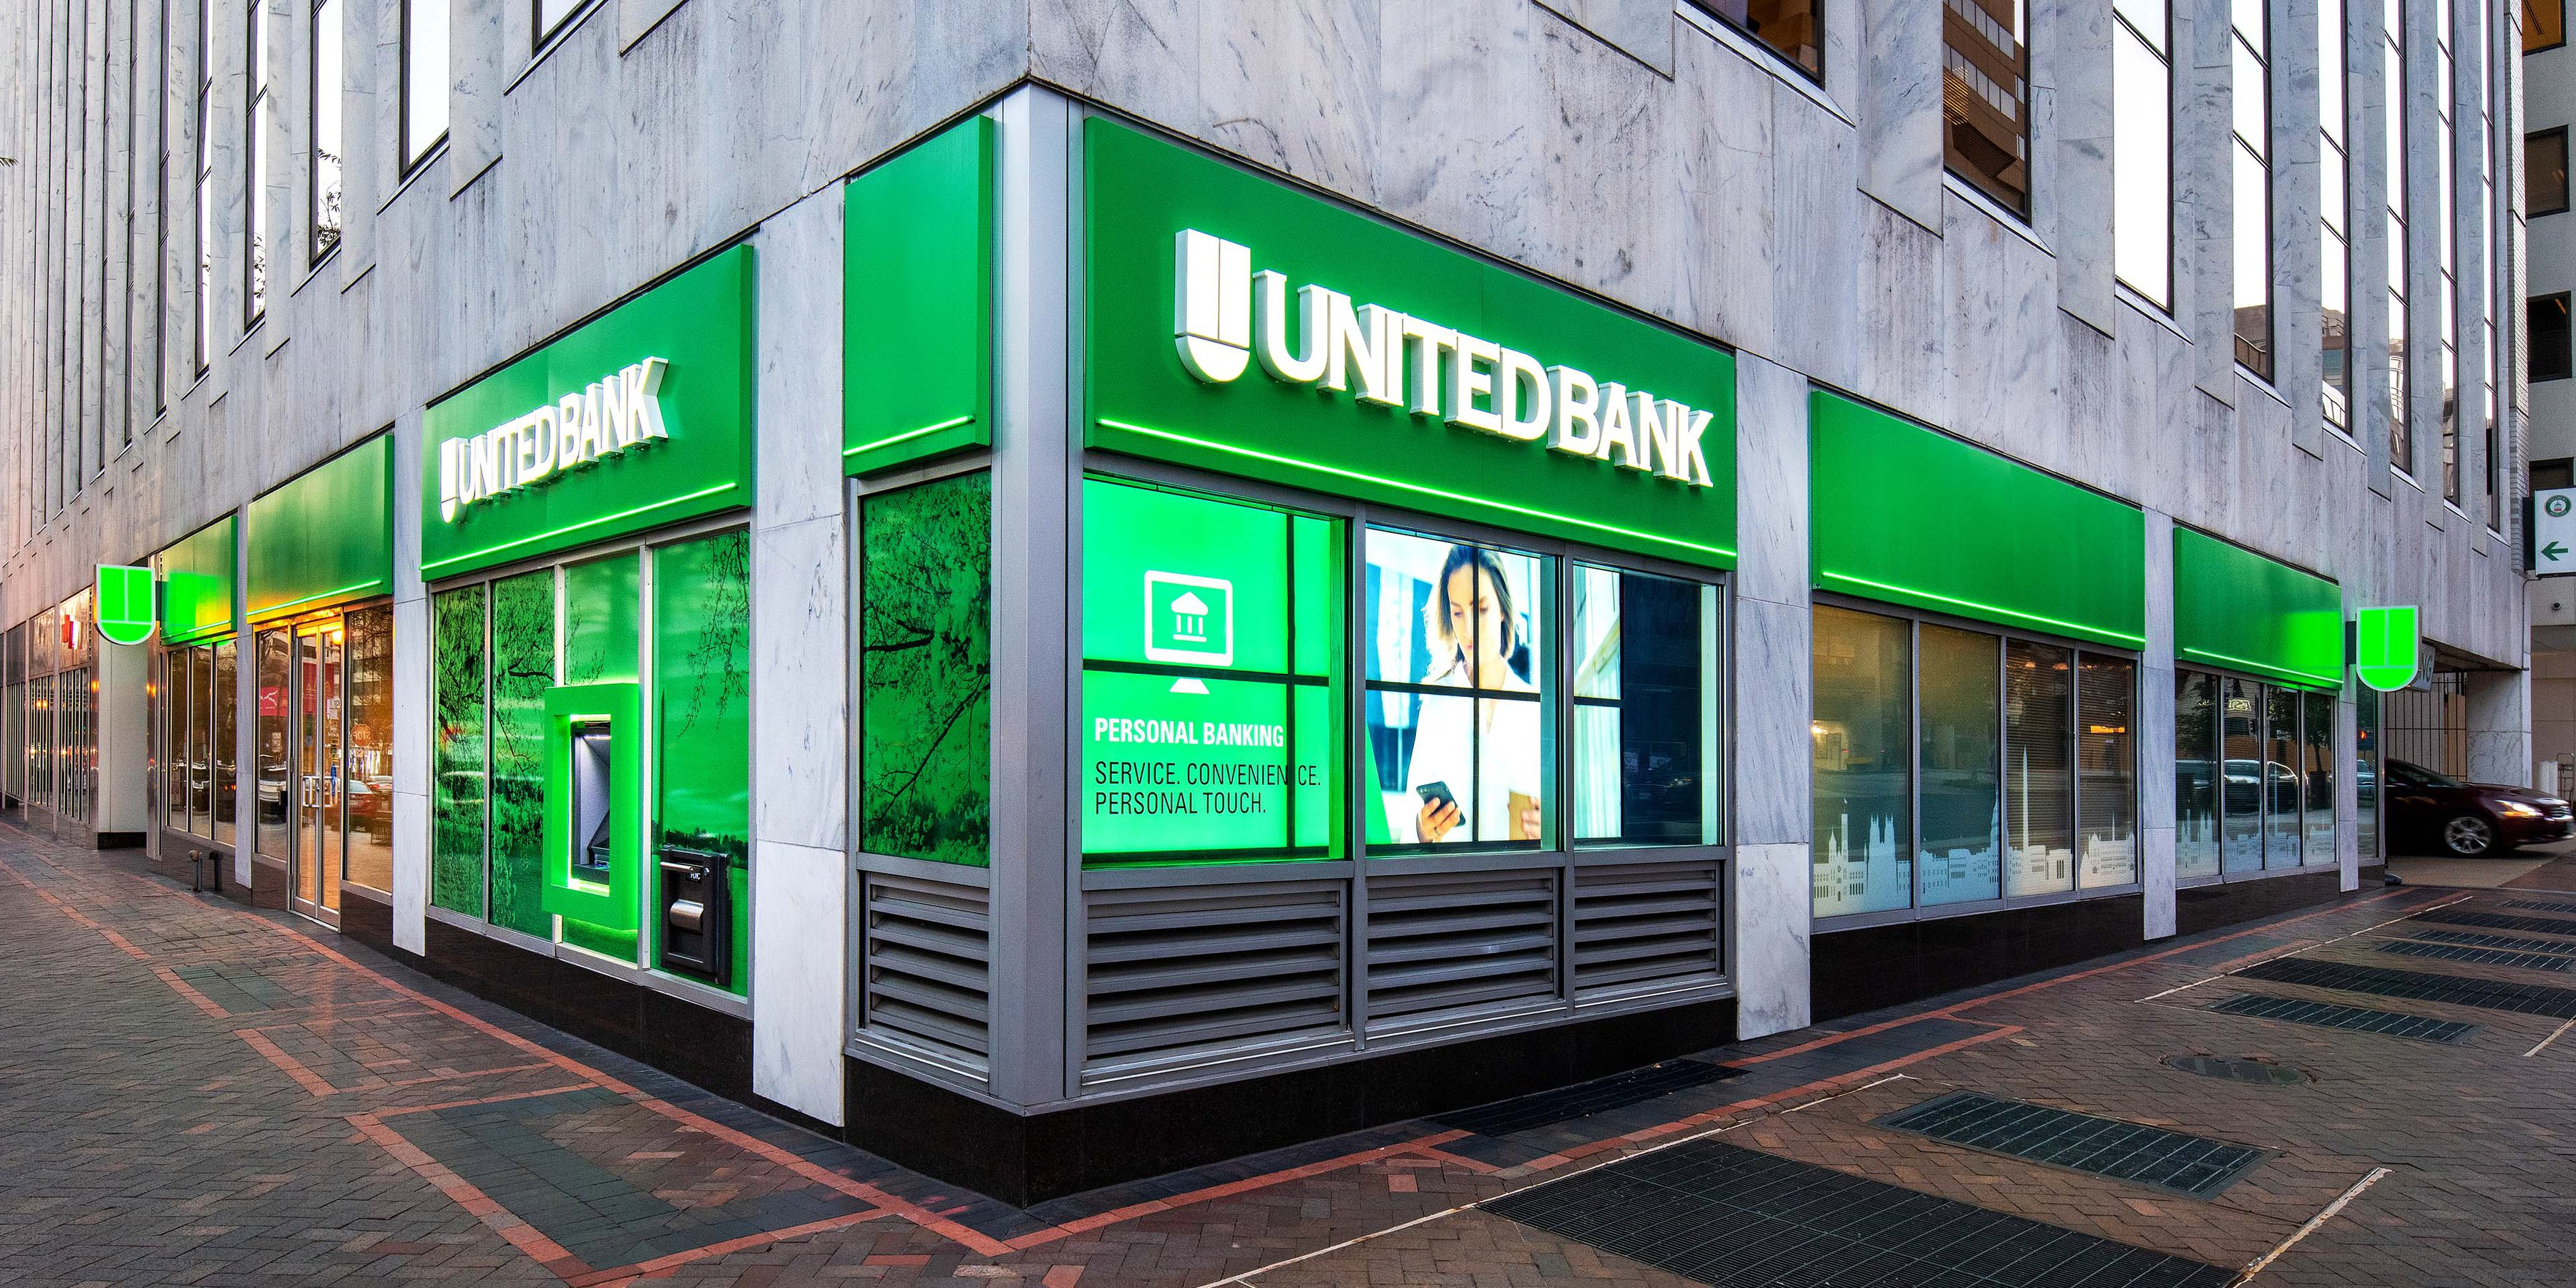 United Bank DC Expansion Case Study